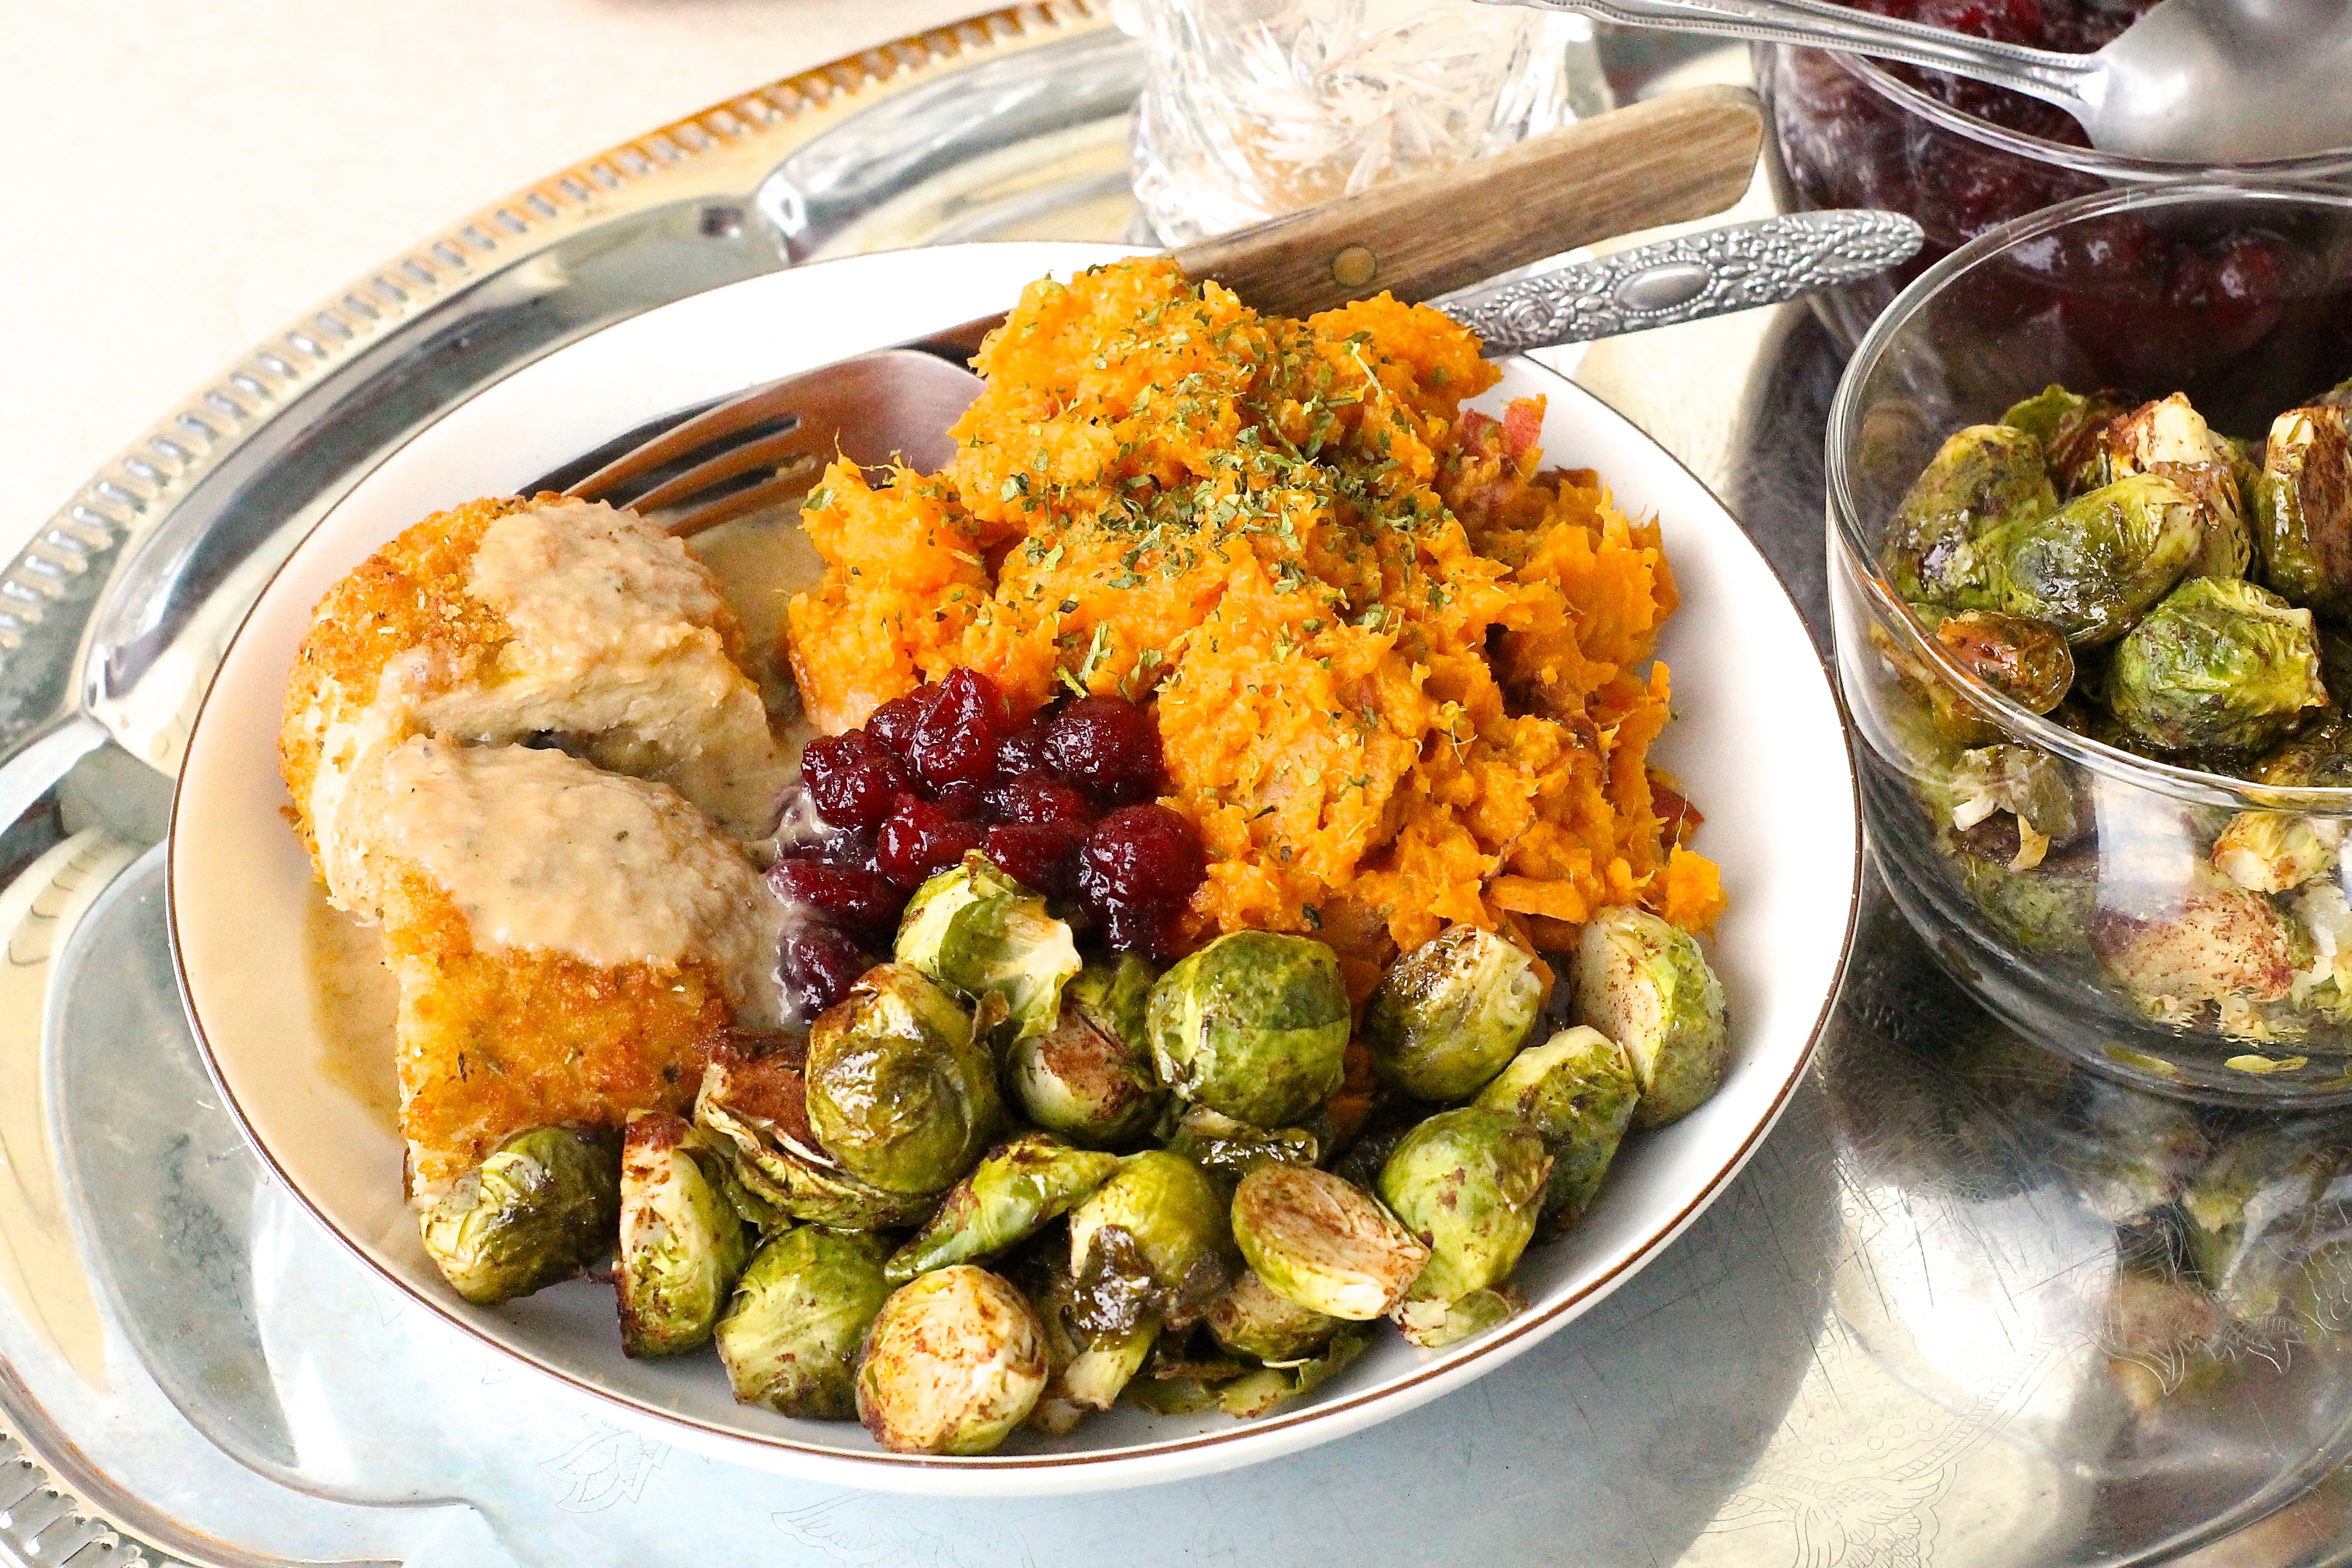 Whole Foods Vegan Thanksgiving Dinner  How to Have An All Vegan Thanksgiving THE PURE LIFE